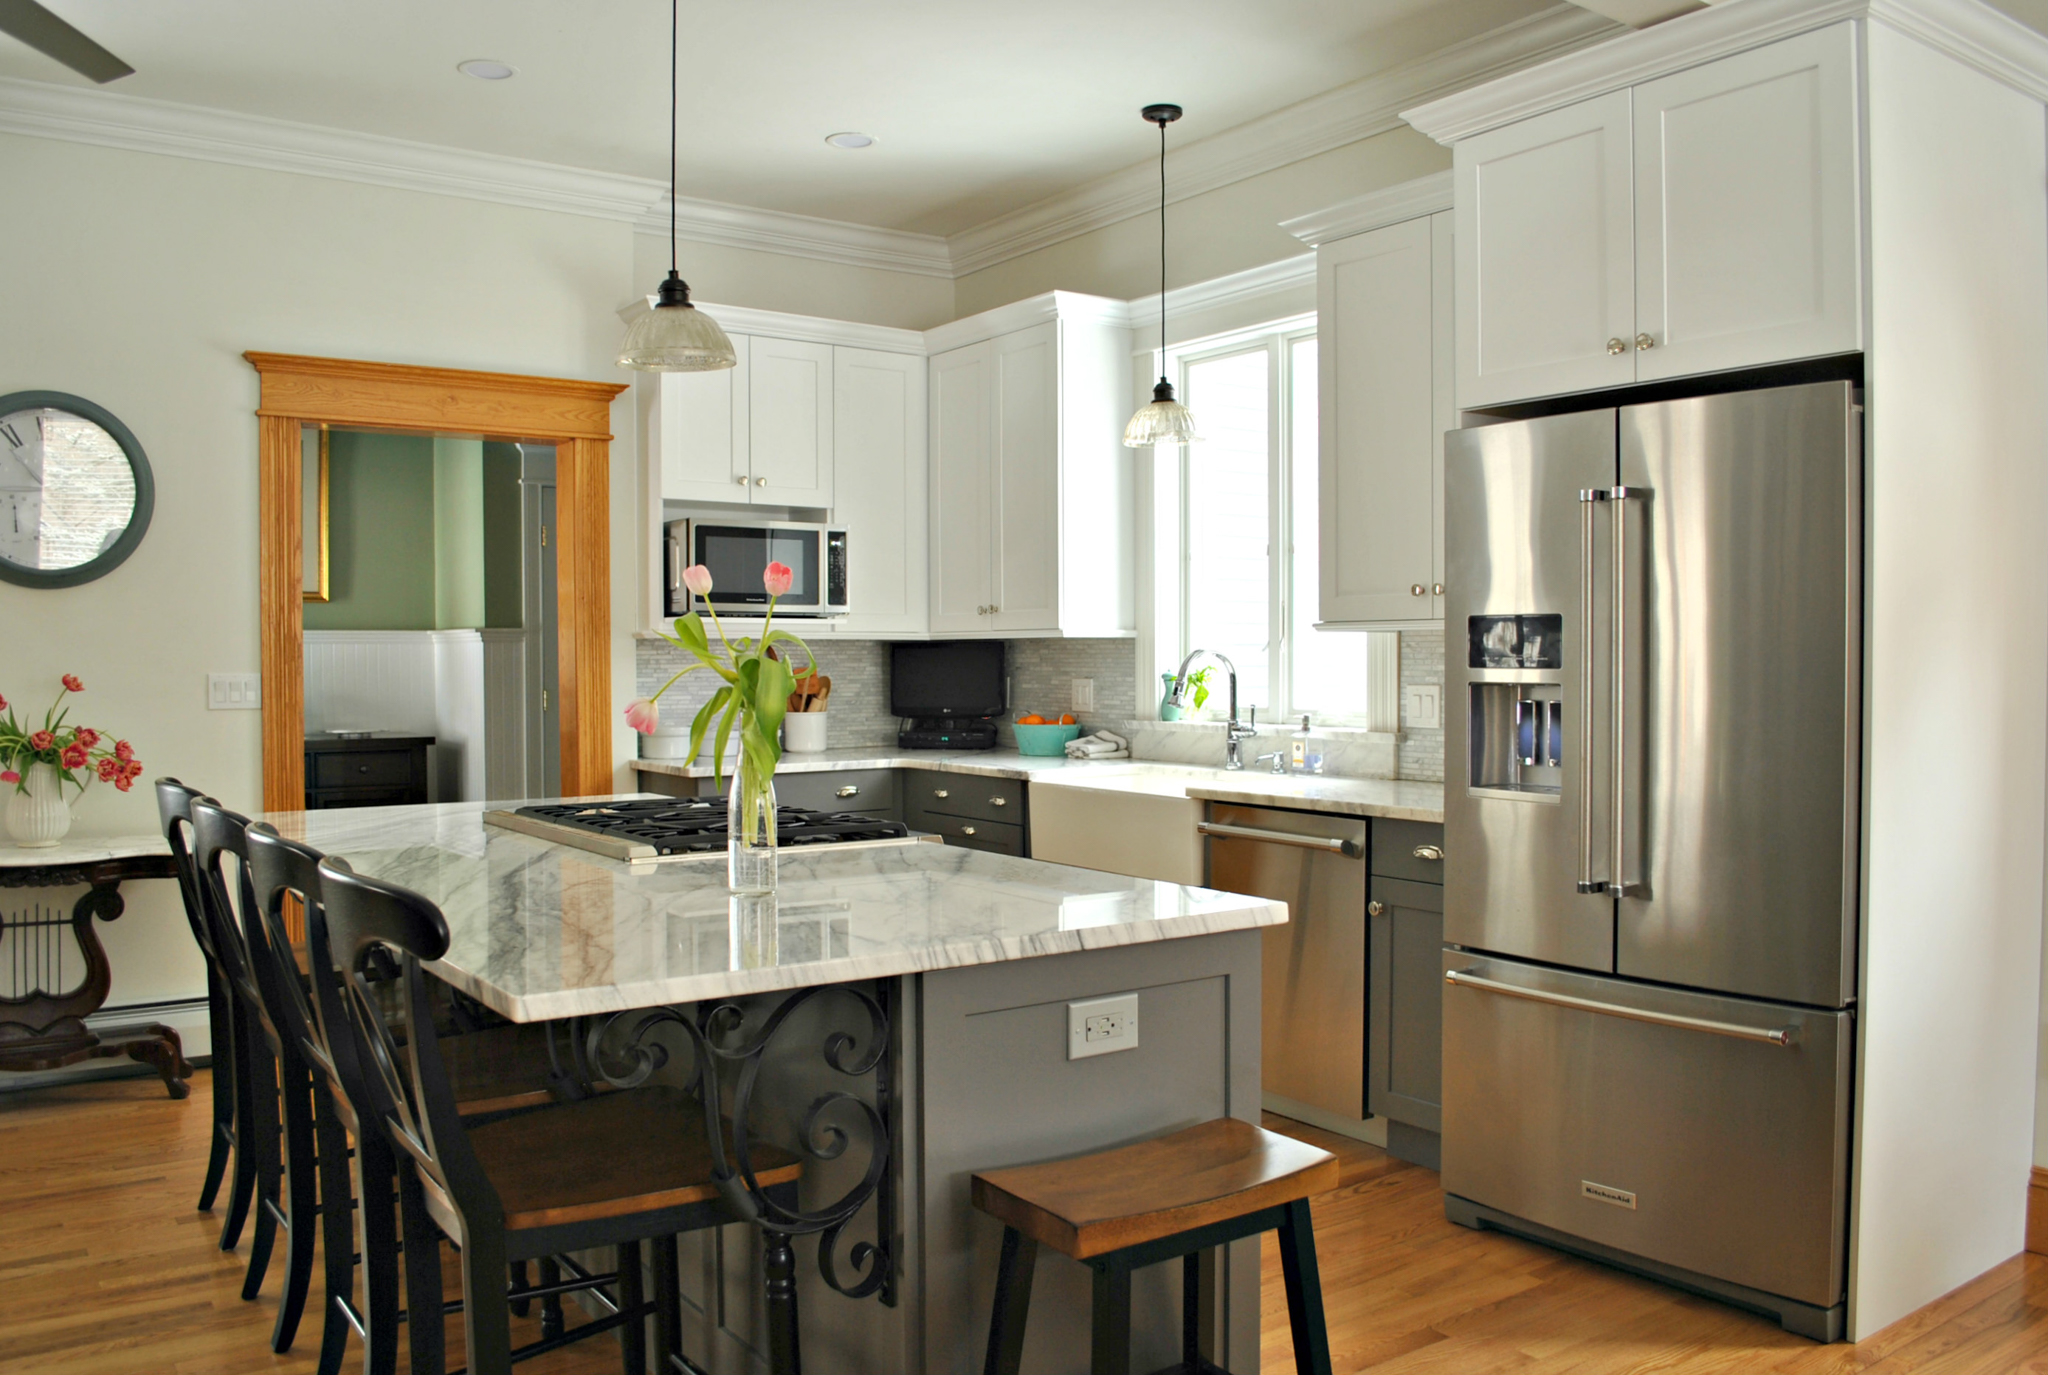 remodel a kitchen corner table with storage bench photos associates massachusetts remodeling worcester ma